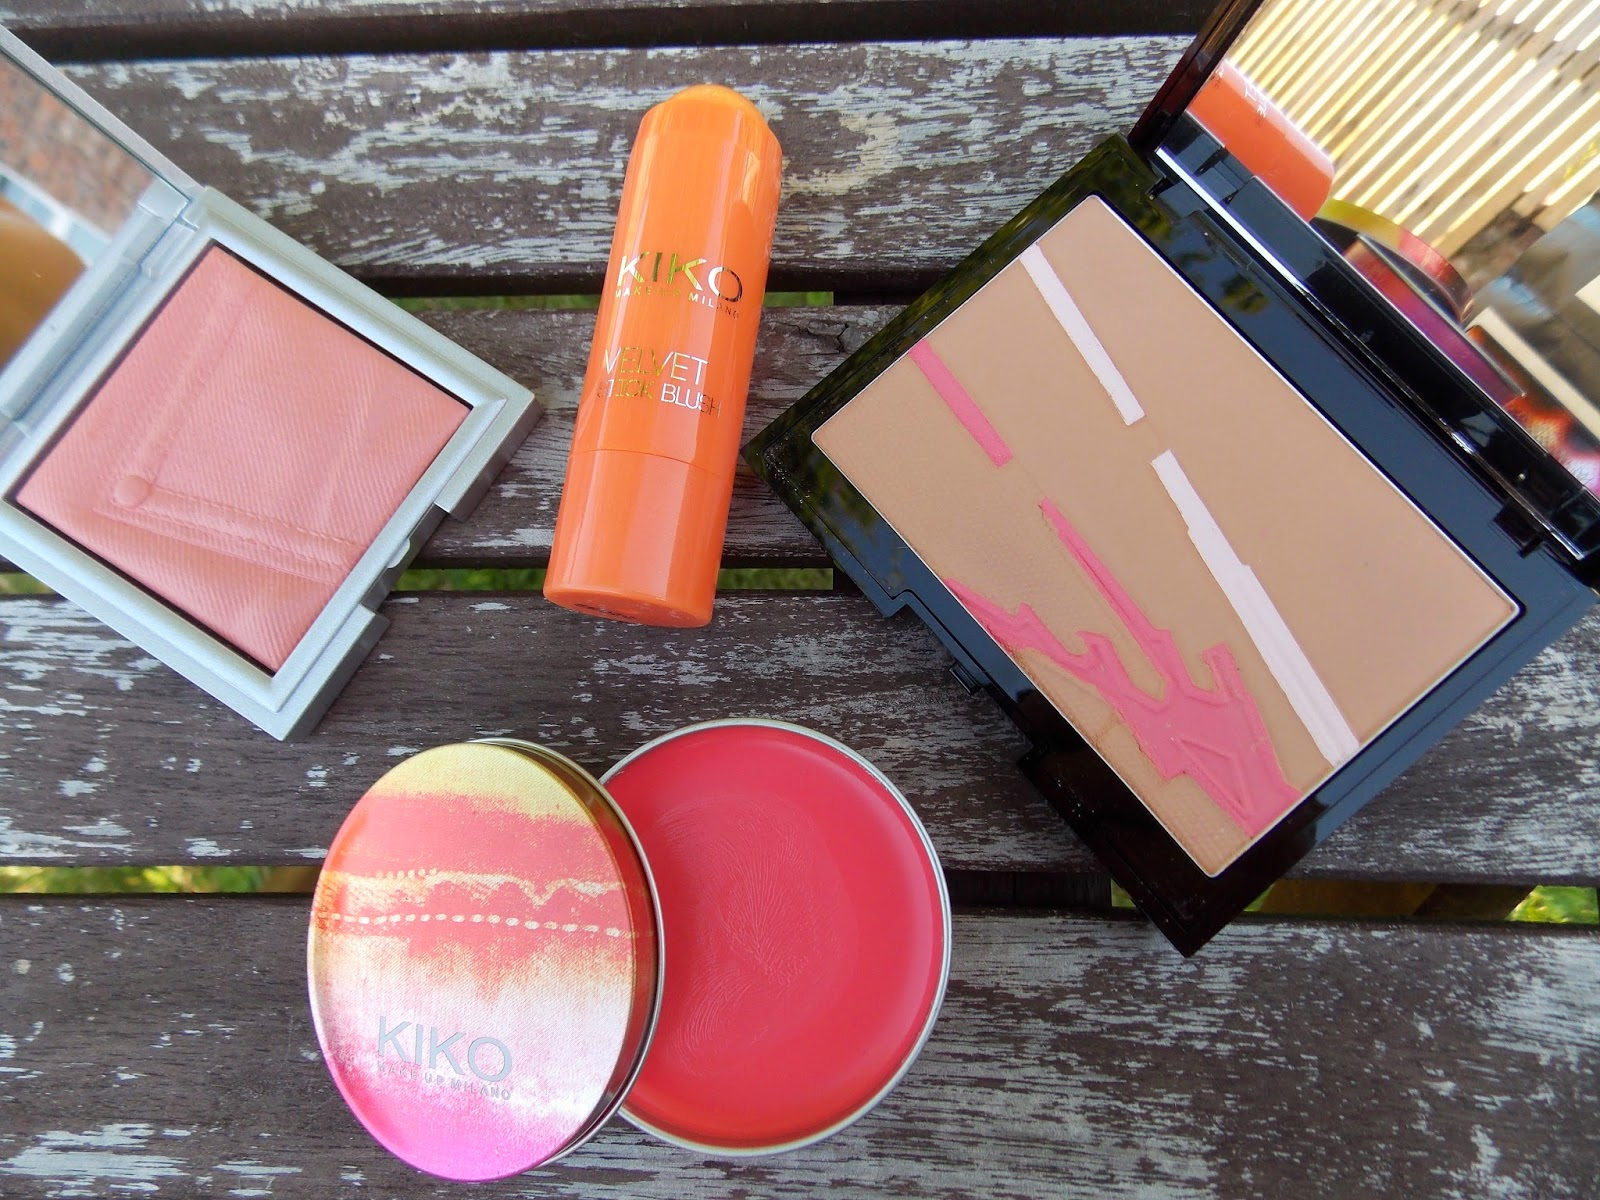 Kiko Rock Attraction Blush in 05 Sound Coral, Kiko Velvet Stick Blusher in 01 Charming Peach, Kiko Loud Night Bronzer in 02 Silky Mat Tan, Kiko Glow Lips & Cheeks in 102 Wave Hibiscus